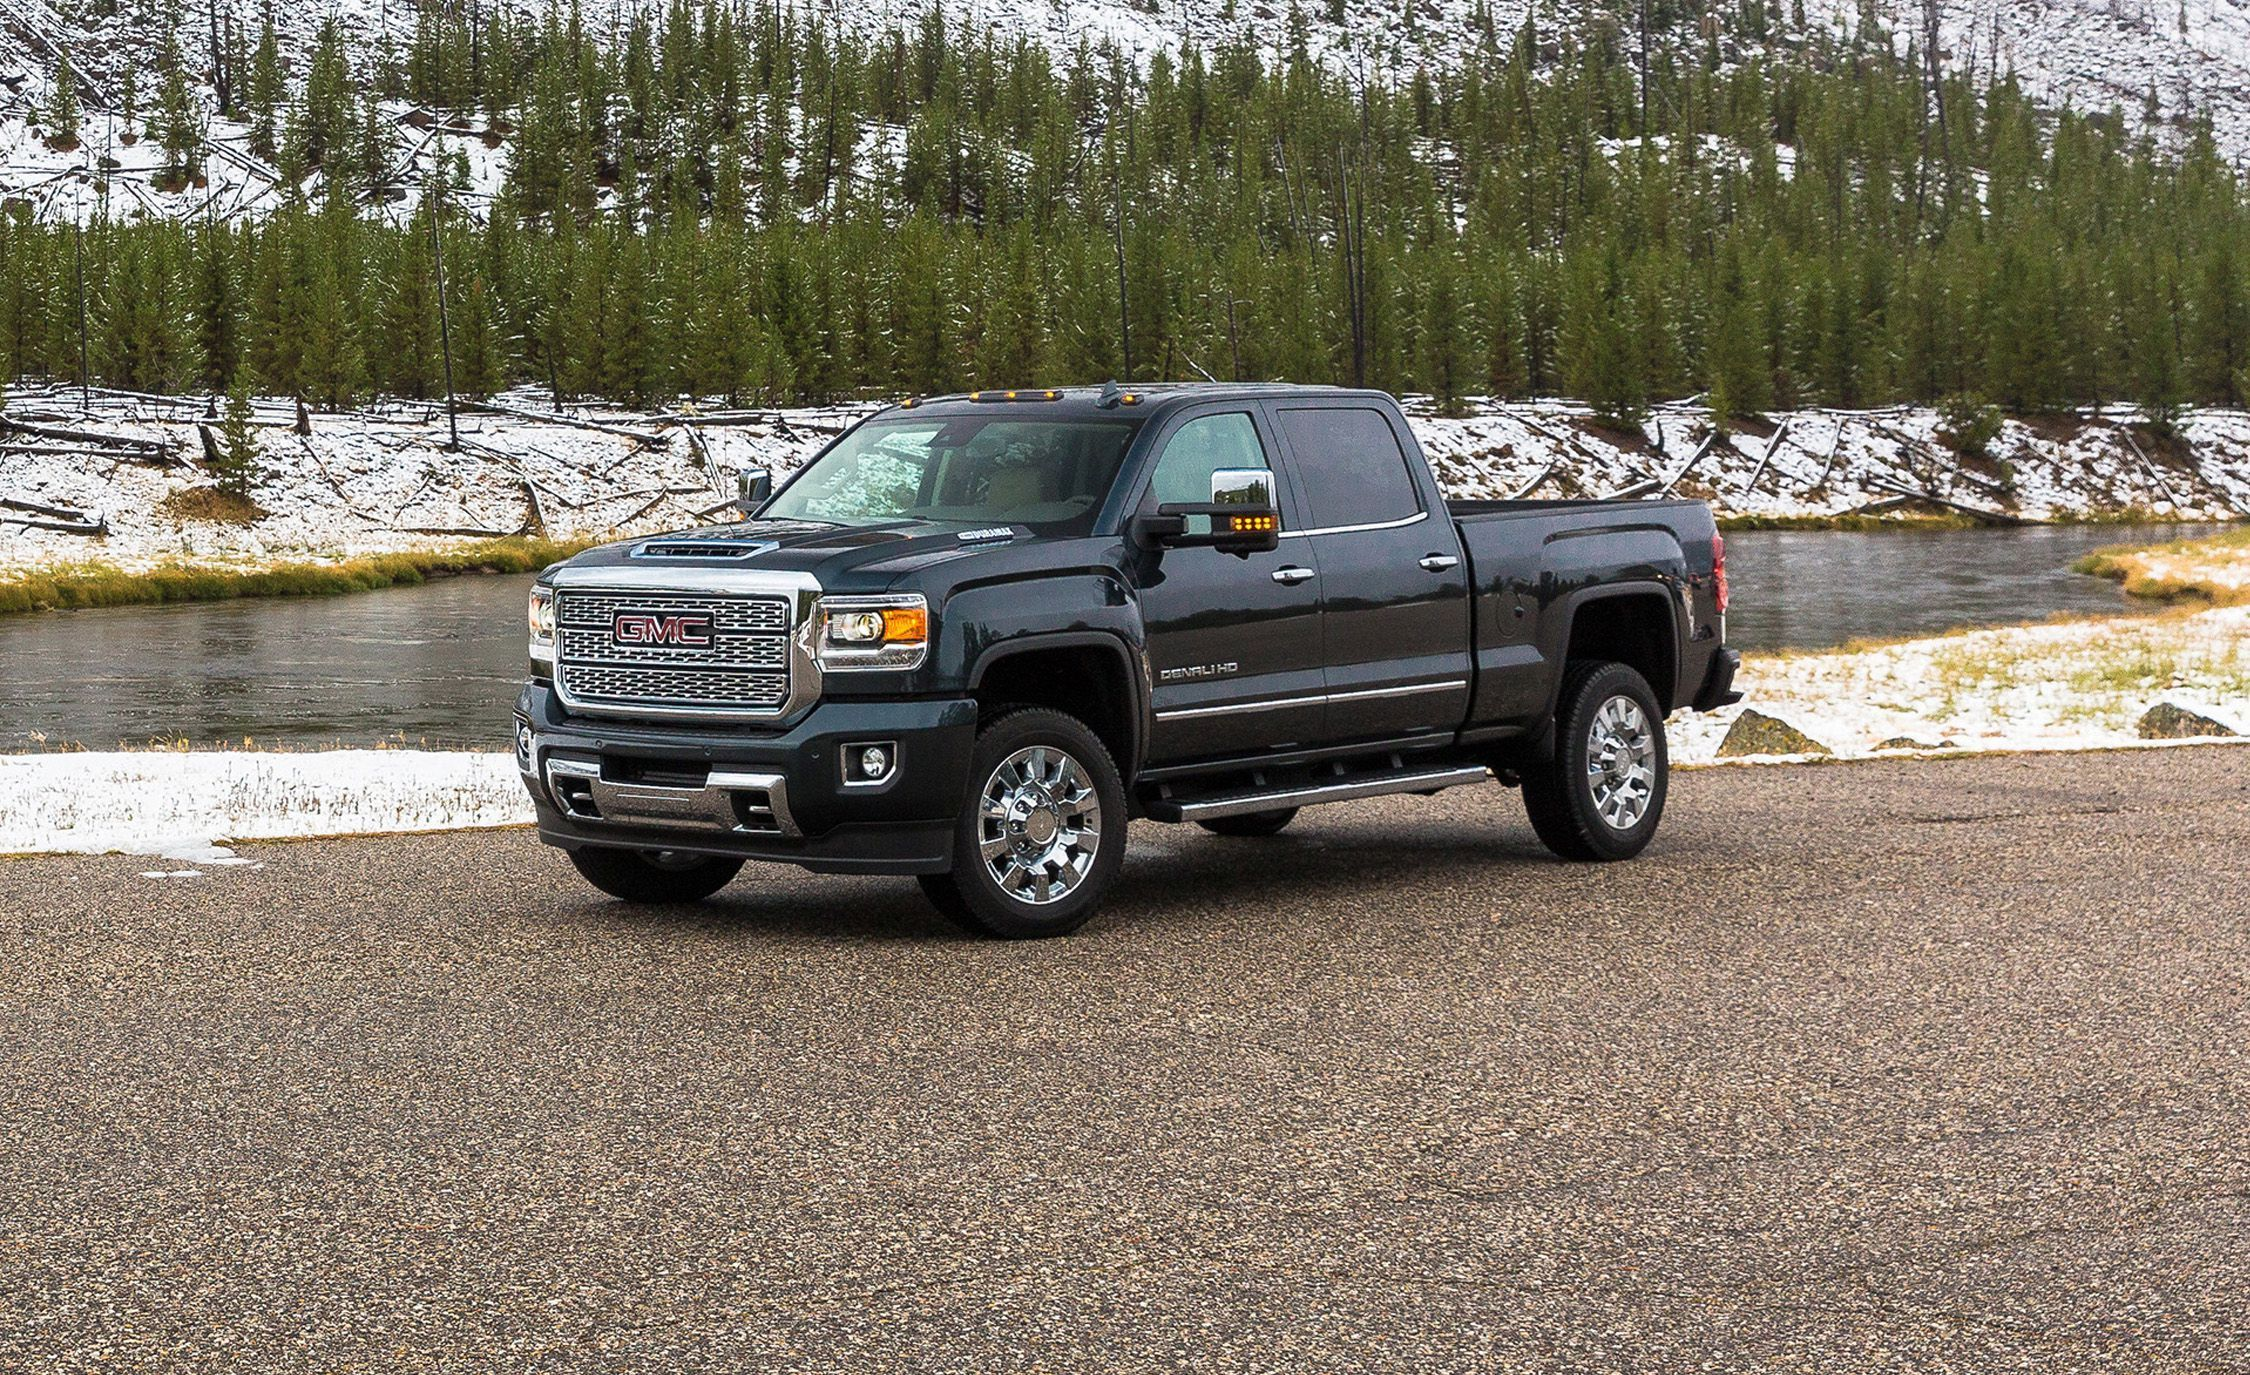 2020 Bmw Sierra Denali Hd Redesign And Review Gmc Sierra 2500hd